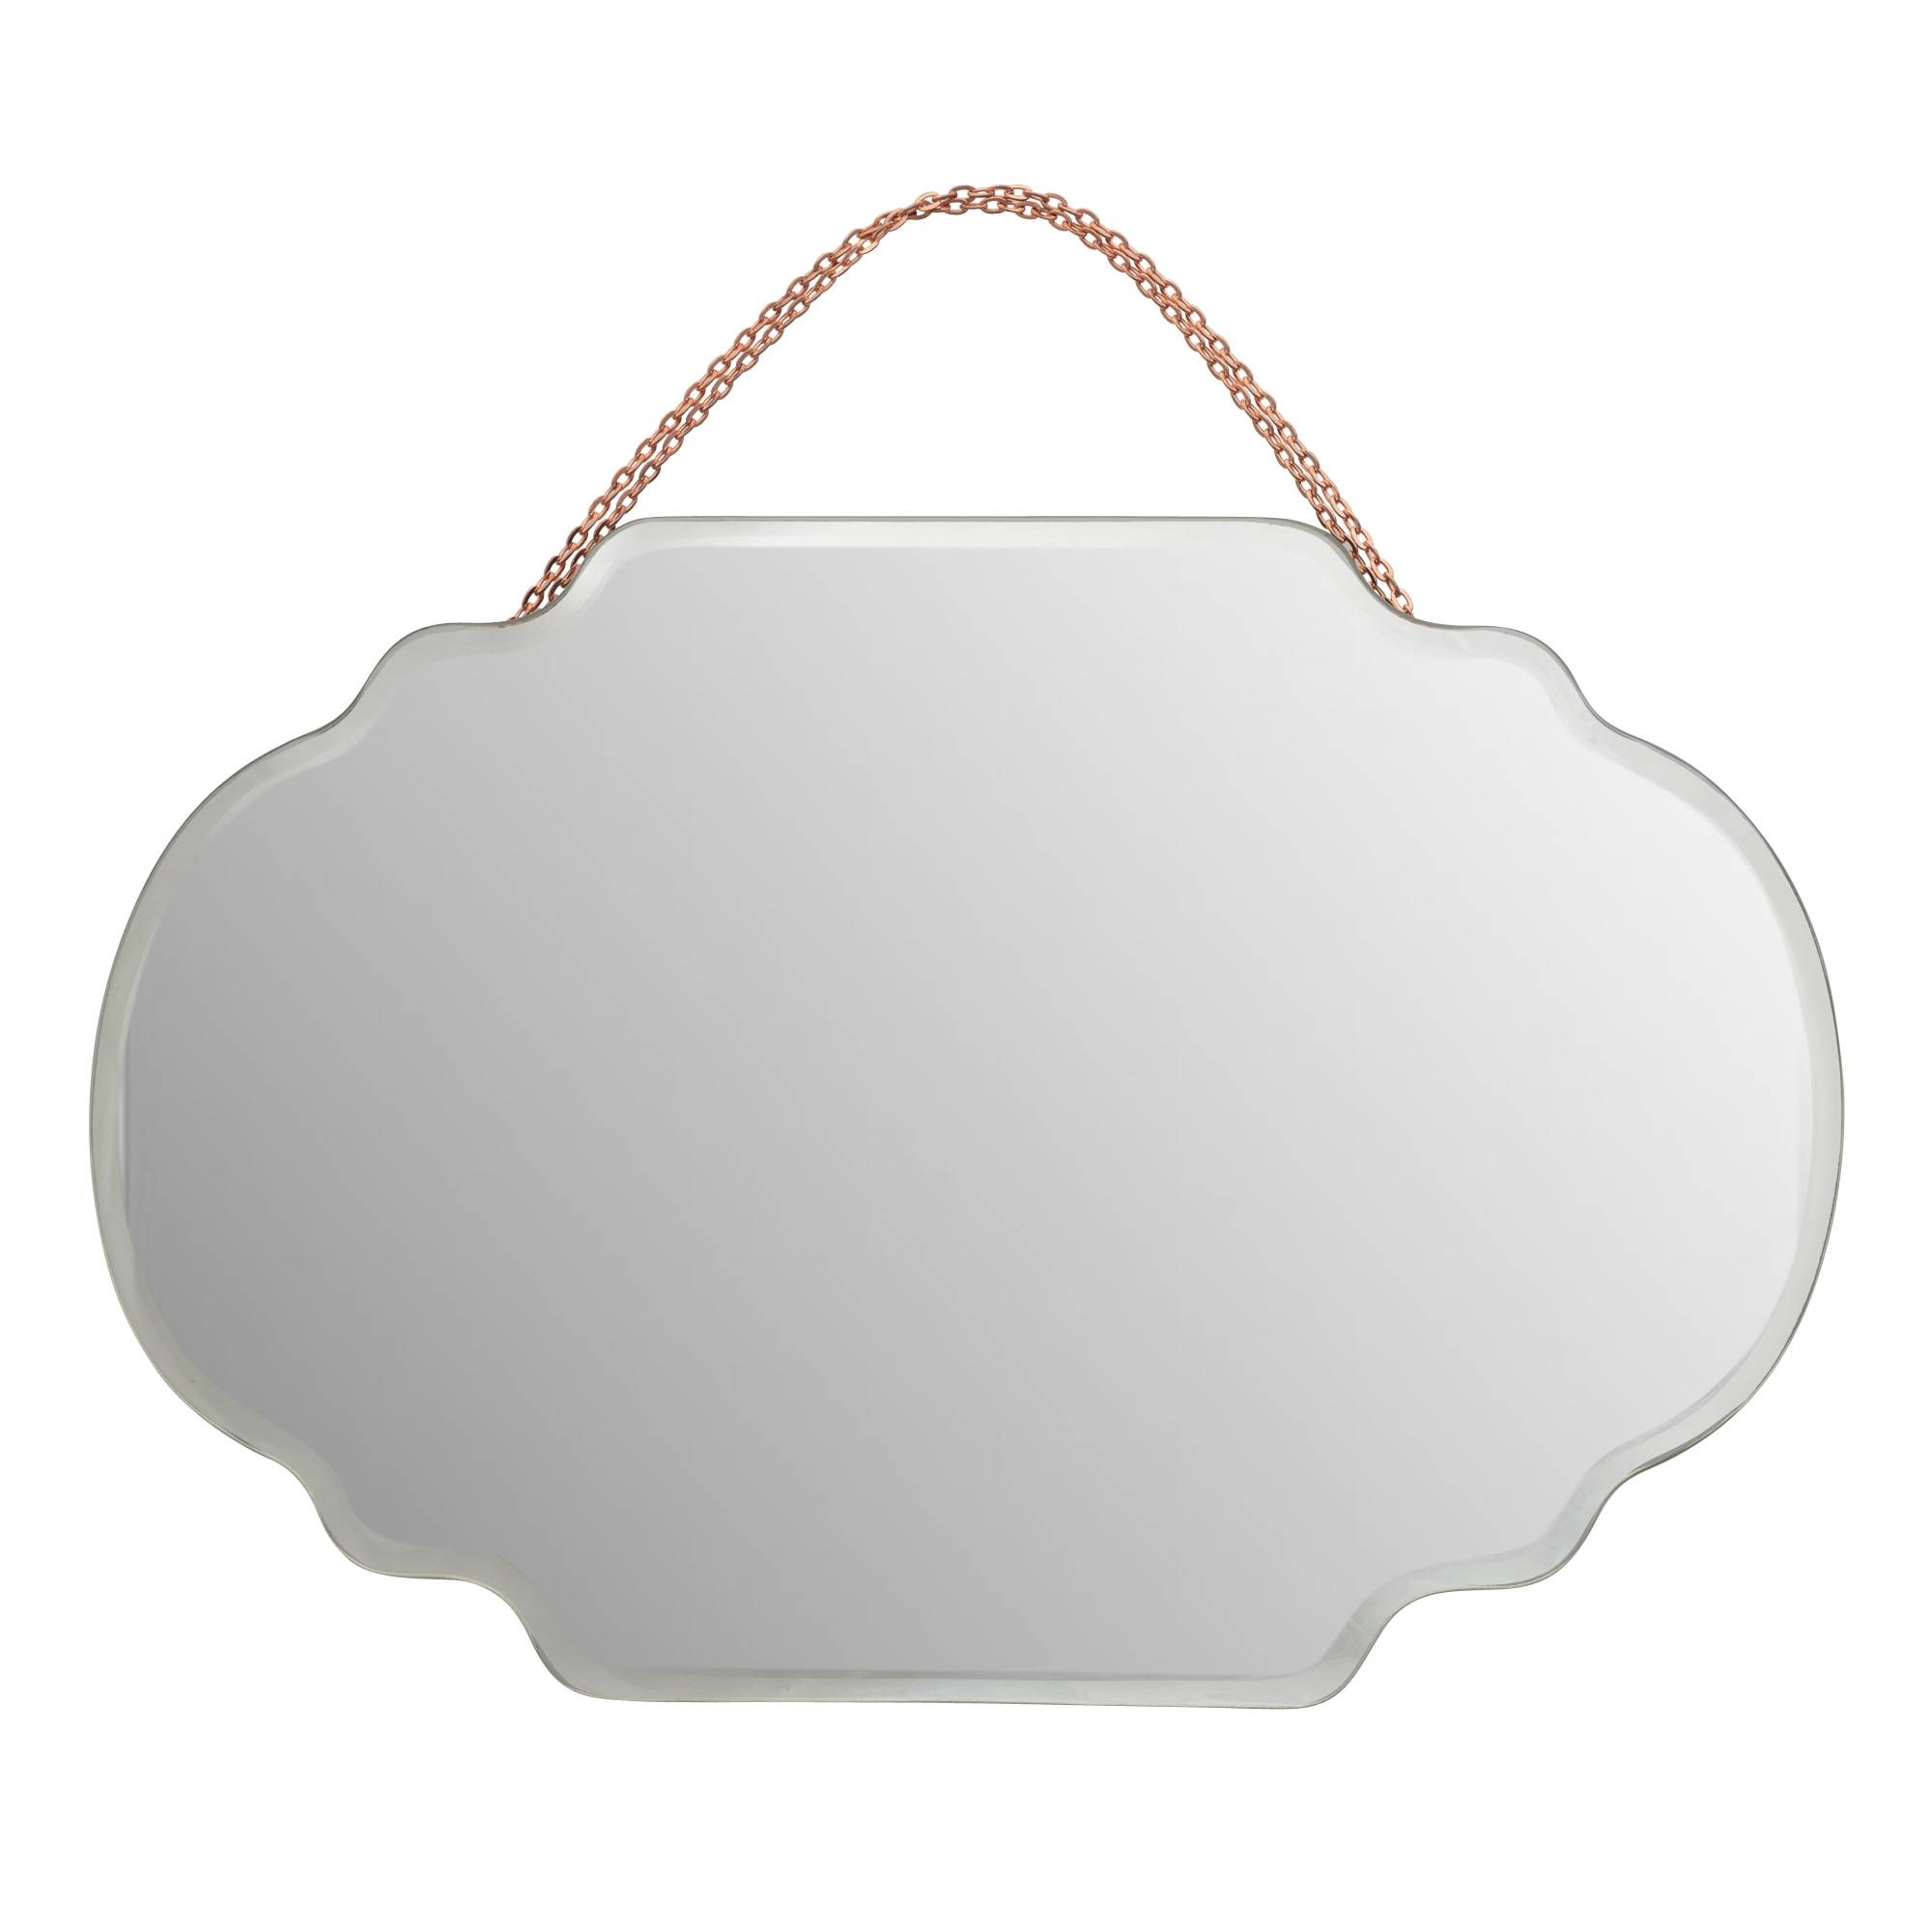 Large Art Deco Mirror | Oliver Bonas Pertaining To Art Deco Large Mirrors (View 14 of 15)